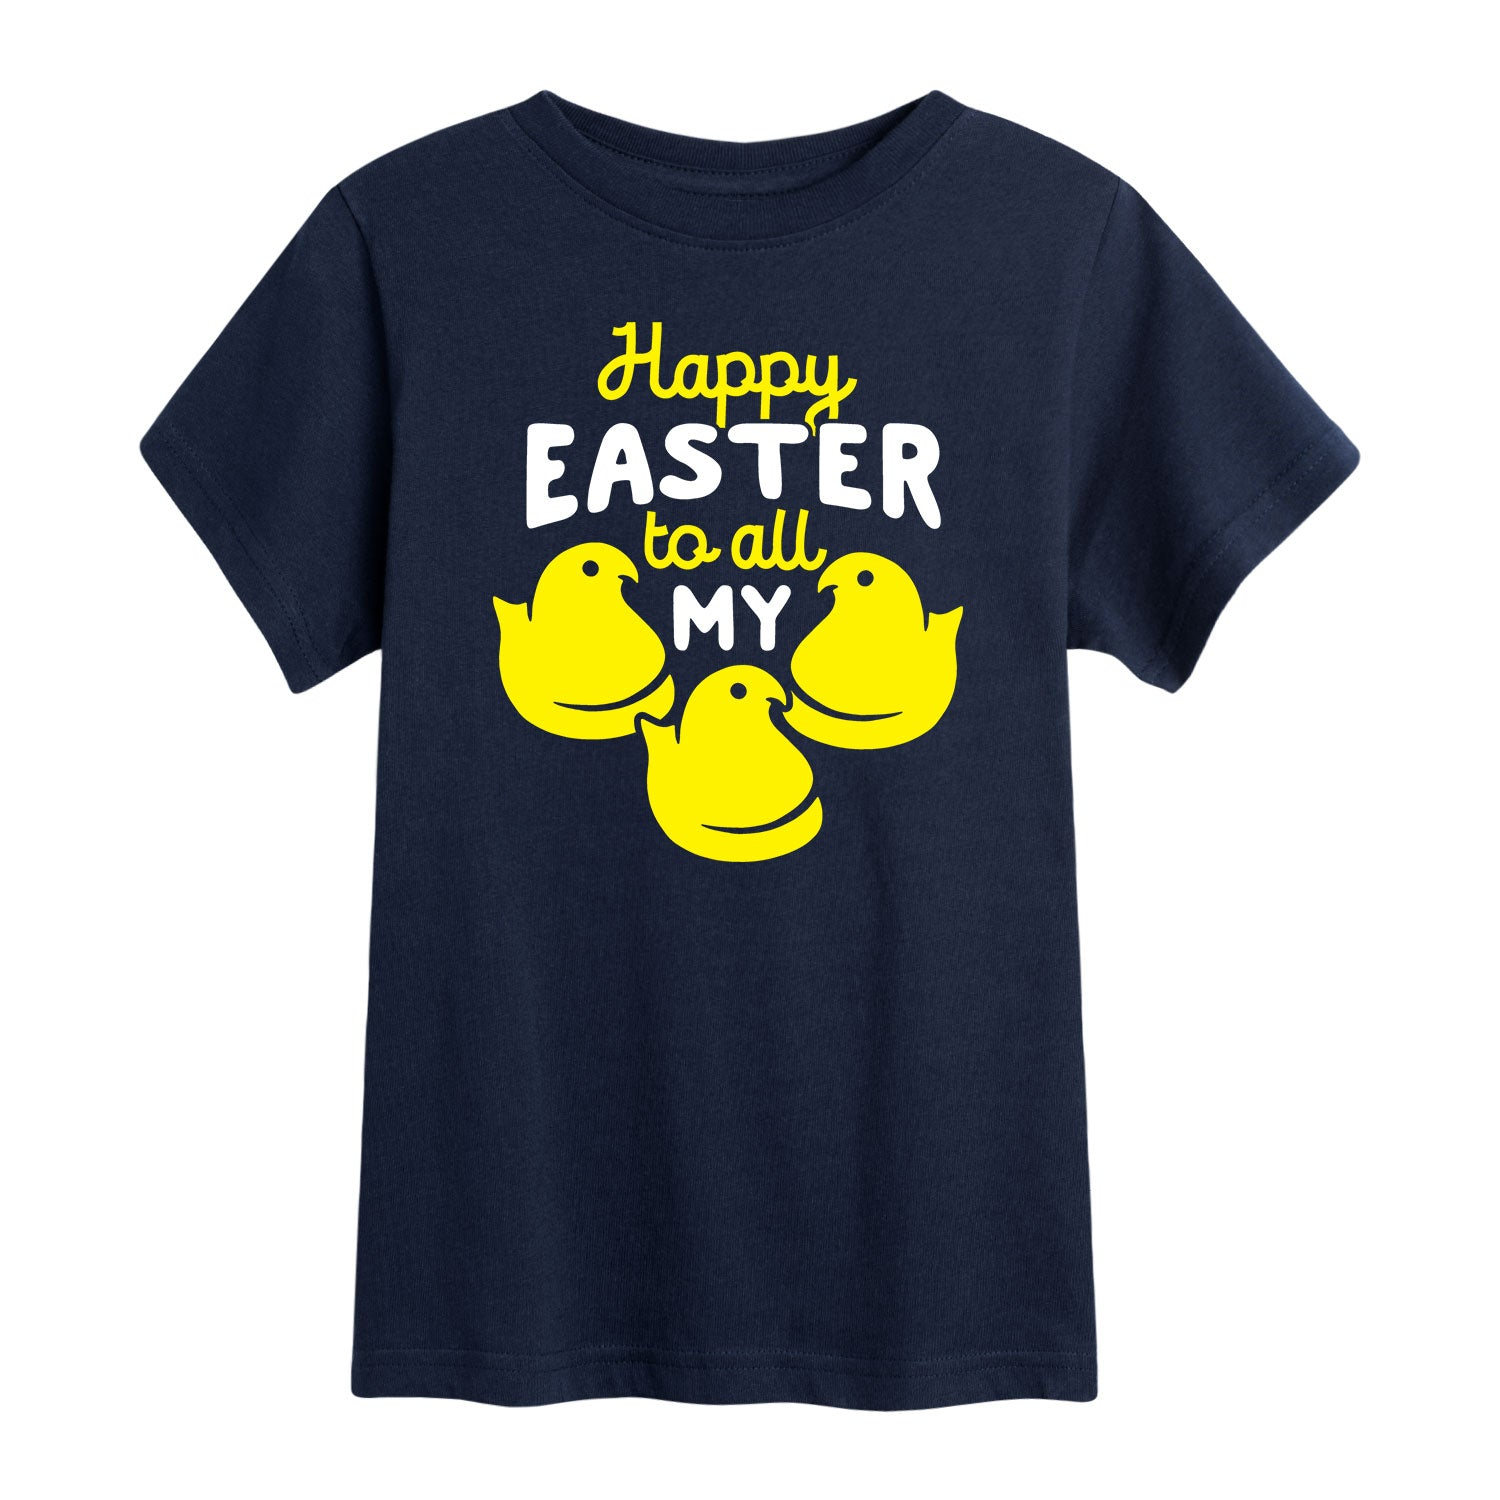 Happy Easter to all My Peeps - Youth Short Sleeve T-Shirt